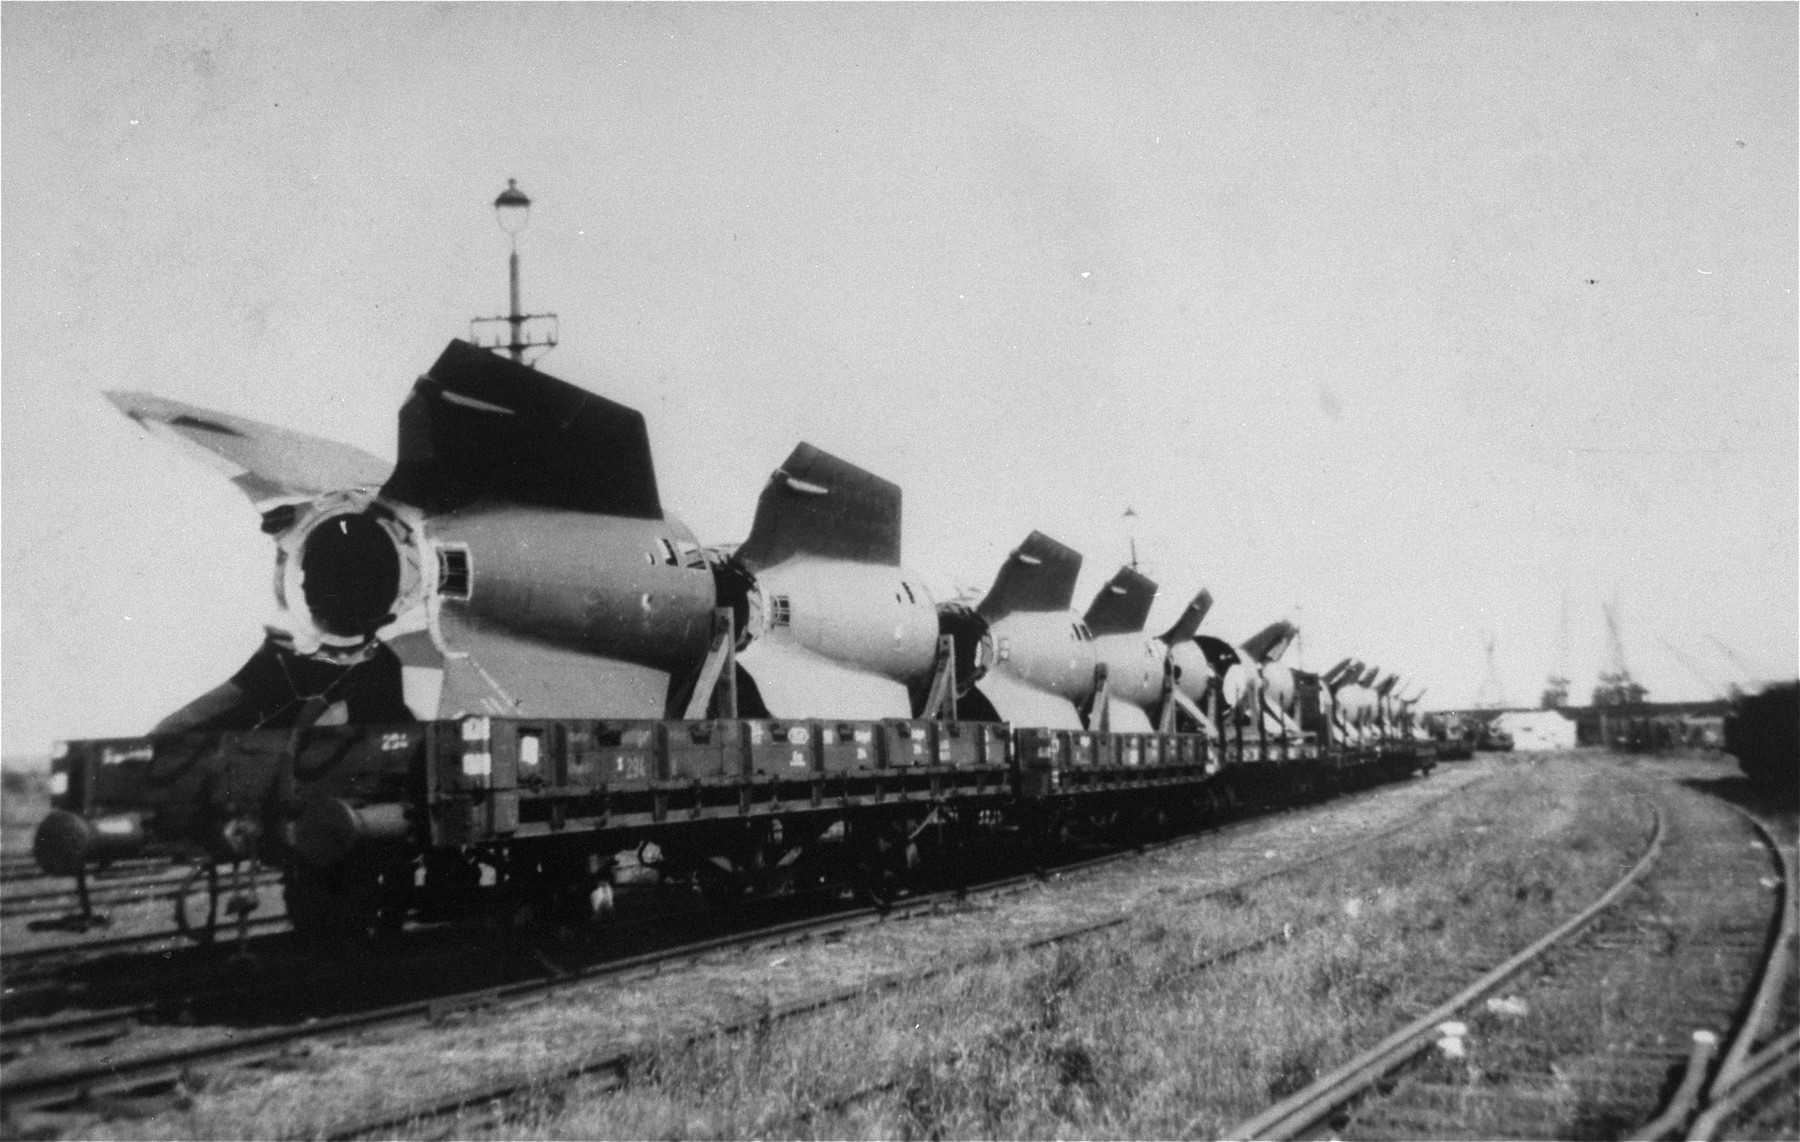 V-2 rocket tail fins manufactured at Dora-Mittelbau, are sent by rail to Antwerp, where they will be trans-shipped to the United States.